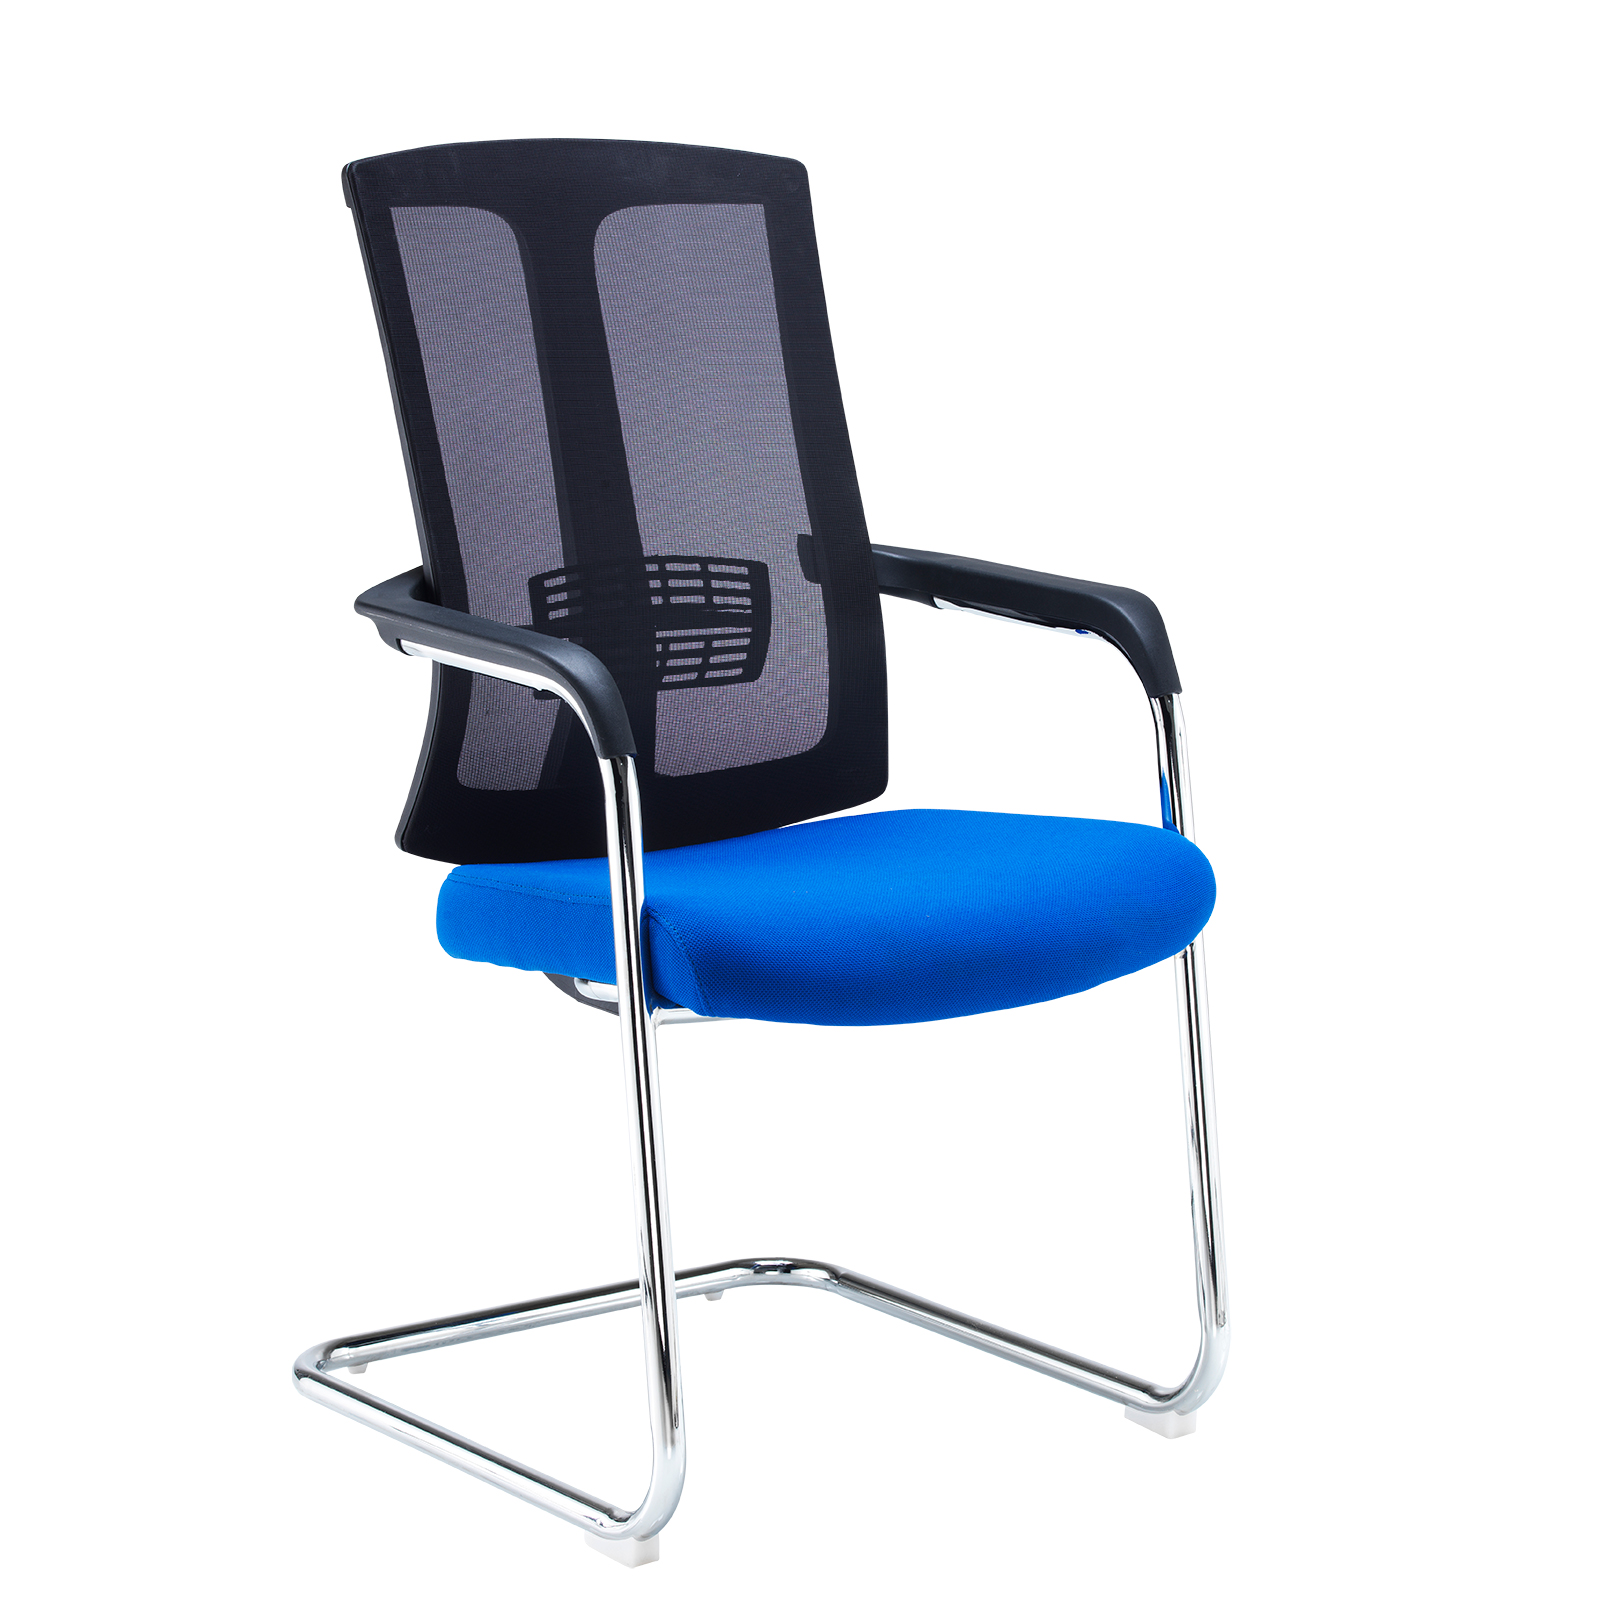 Boardroom / Meeting Ronan conference chair with mesh back